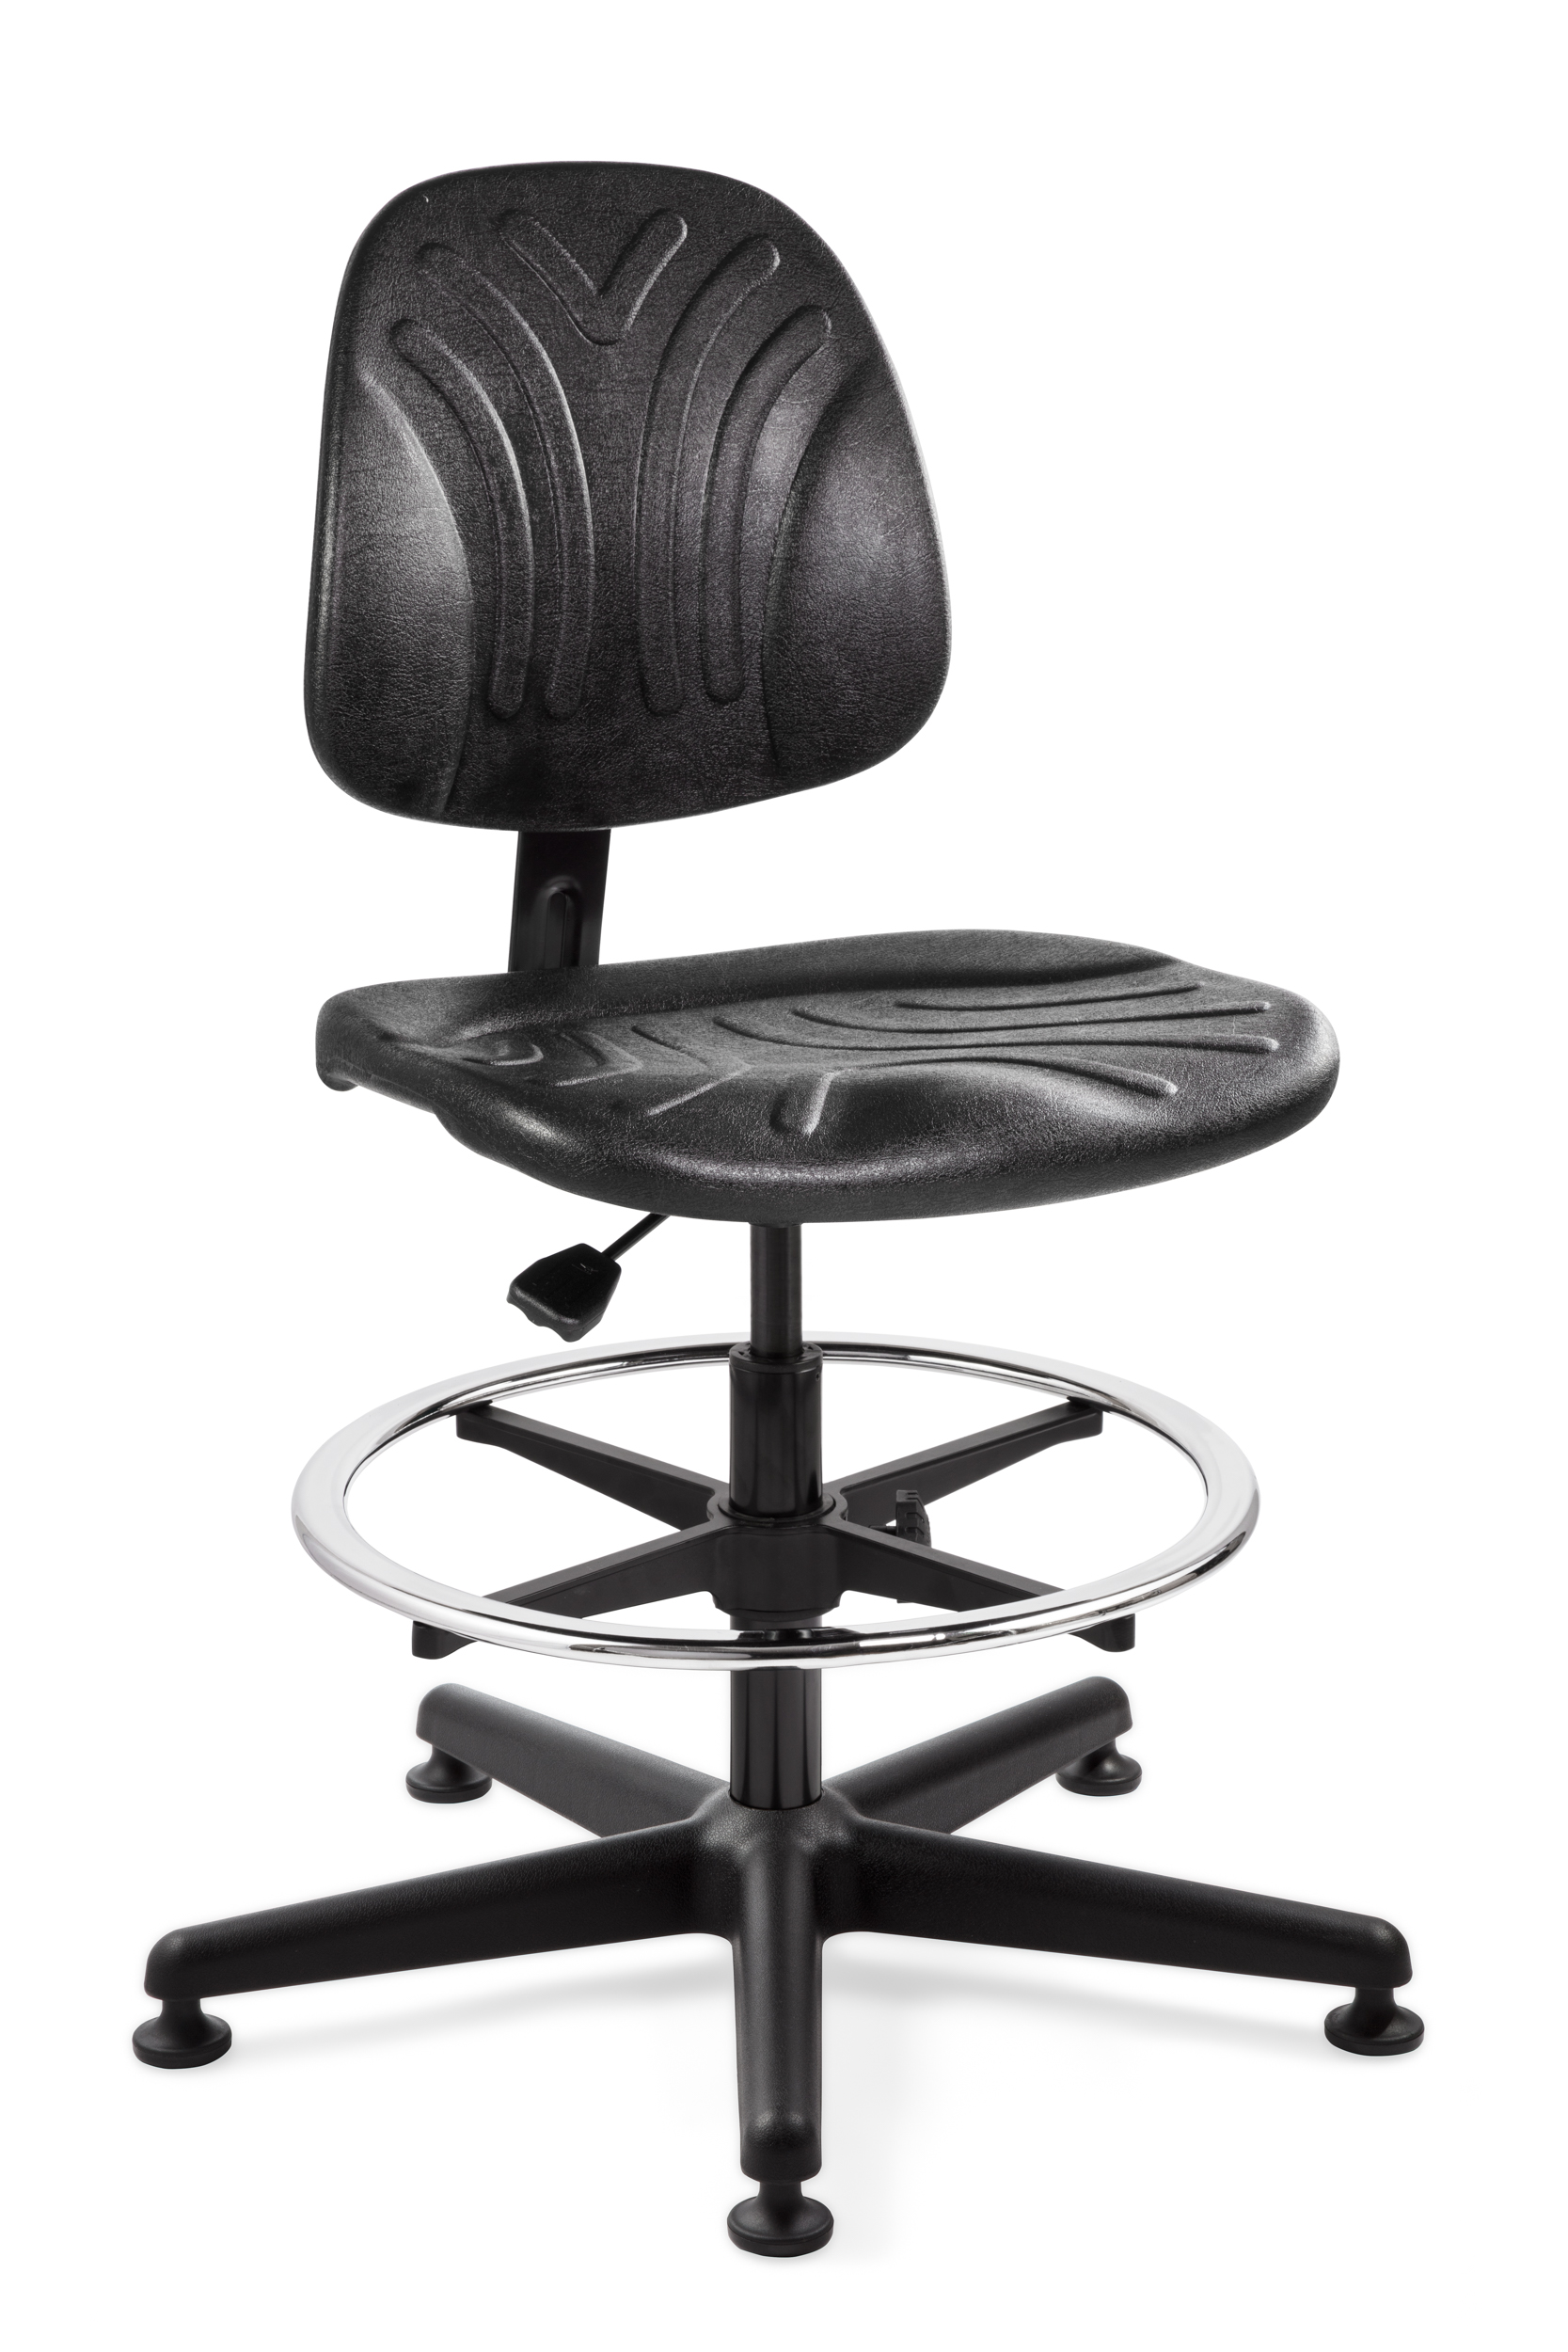 broadcast desk chair